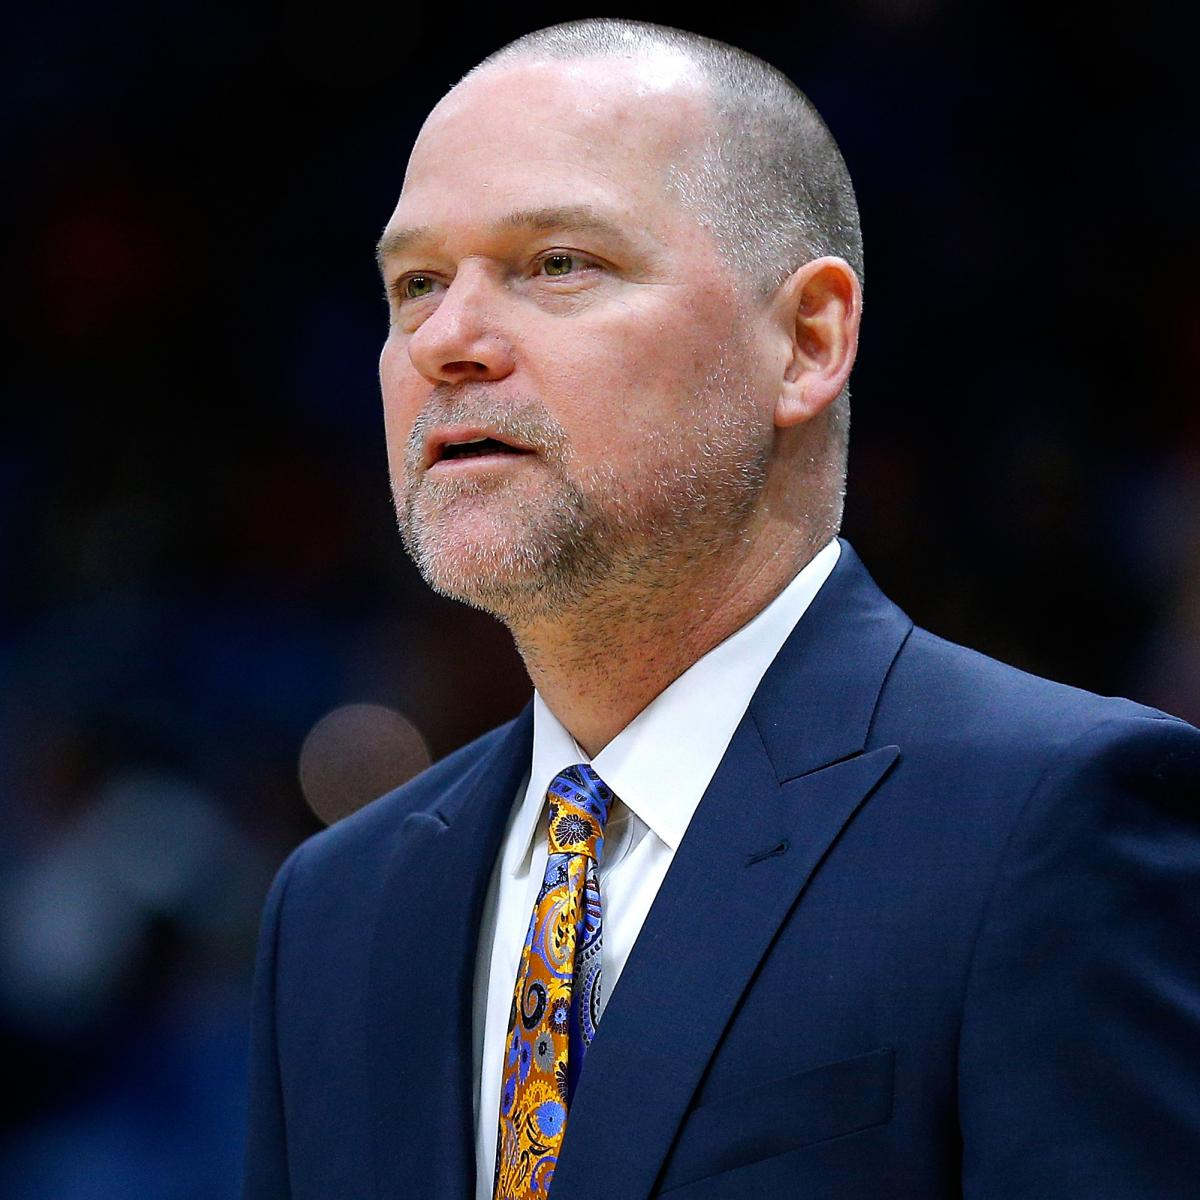 Mike Malone To Coach Team LeBron In 2019 NBA All-Star Game